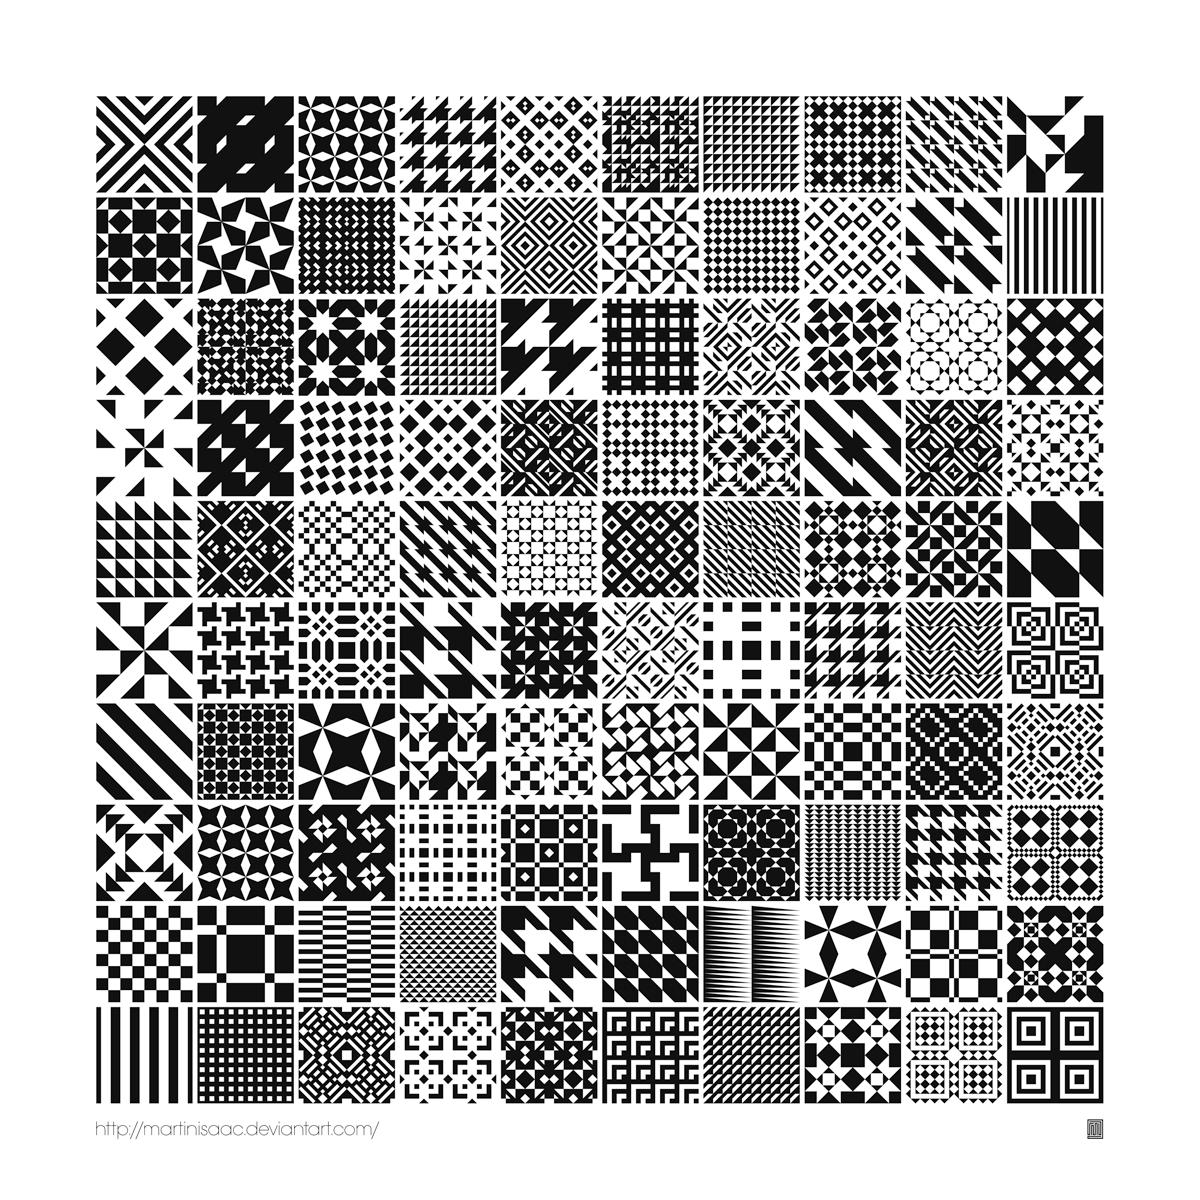 100 Free Monochrome Geometric Patterns by Martin Isaac